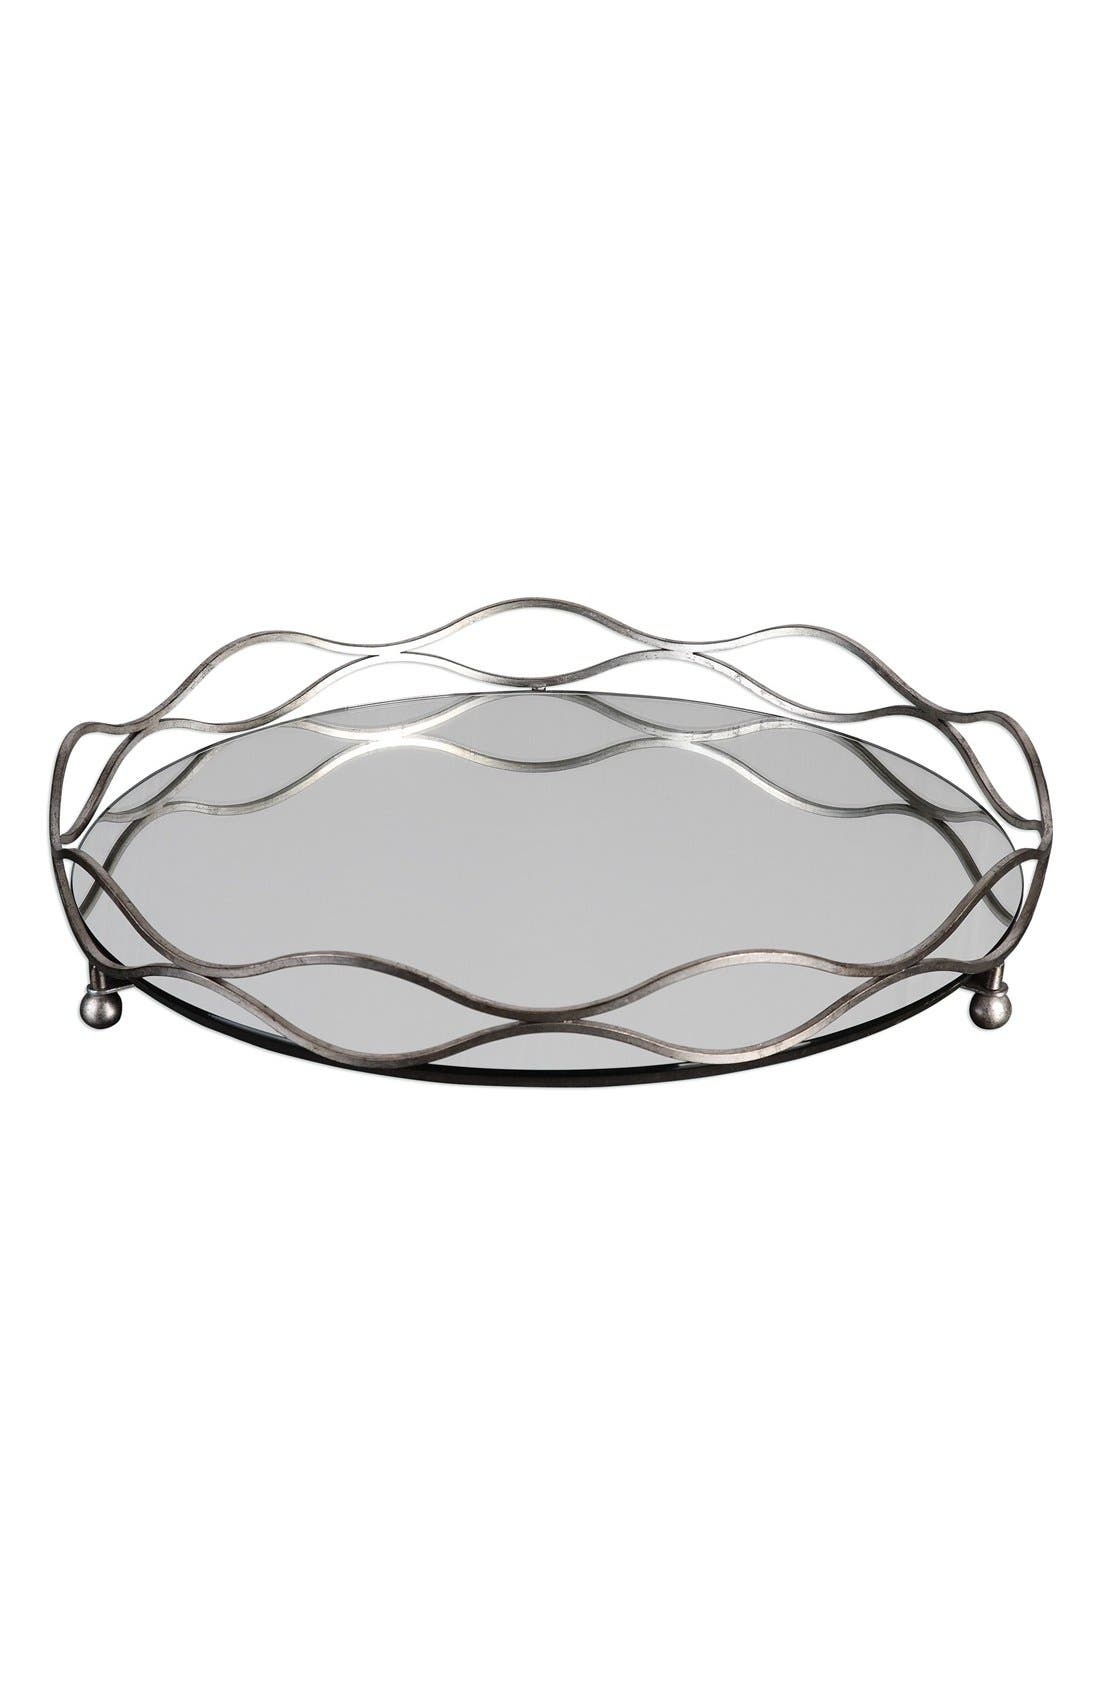 Main Image - Uttermost Mirrored Tray